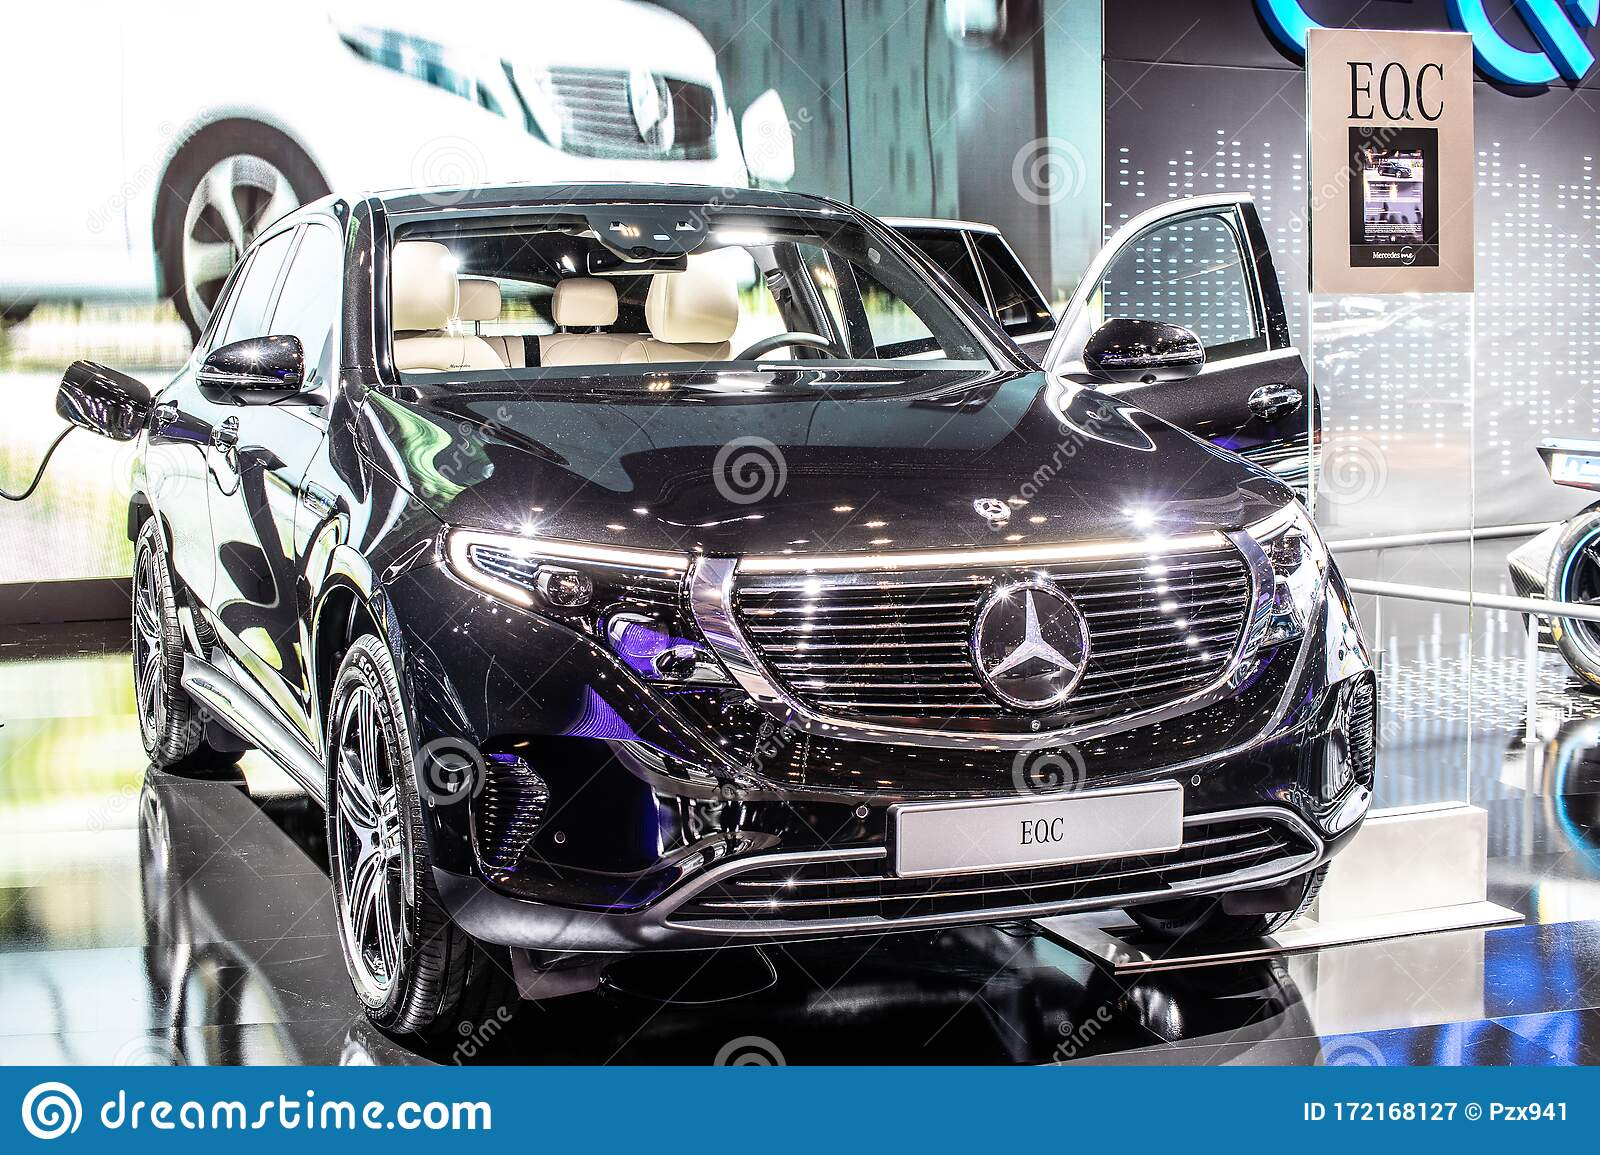 Electric Mercedes Eqc 400 4matic 300kw Suv 2020 Model Year Eq Brand At Brussels Motor Show Produced By Mercedes Benz Editorial Photography Image Of Motor Automobile 172168127